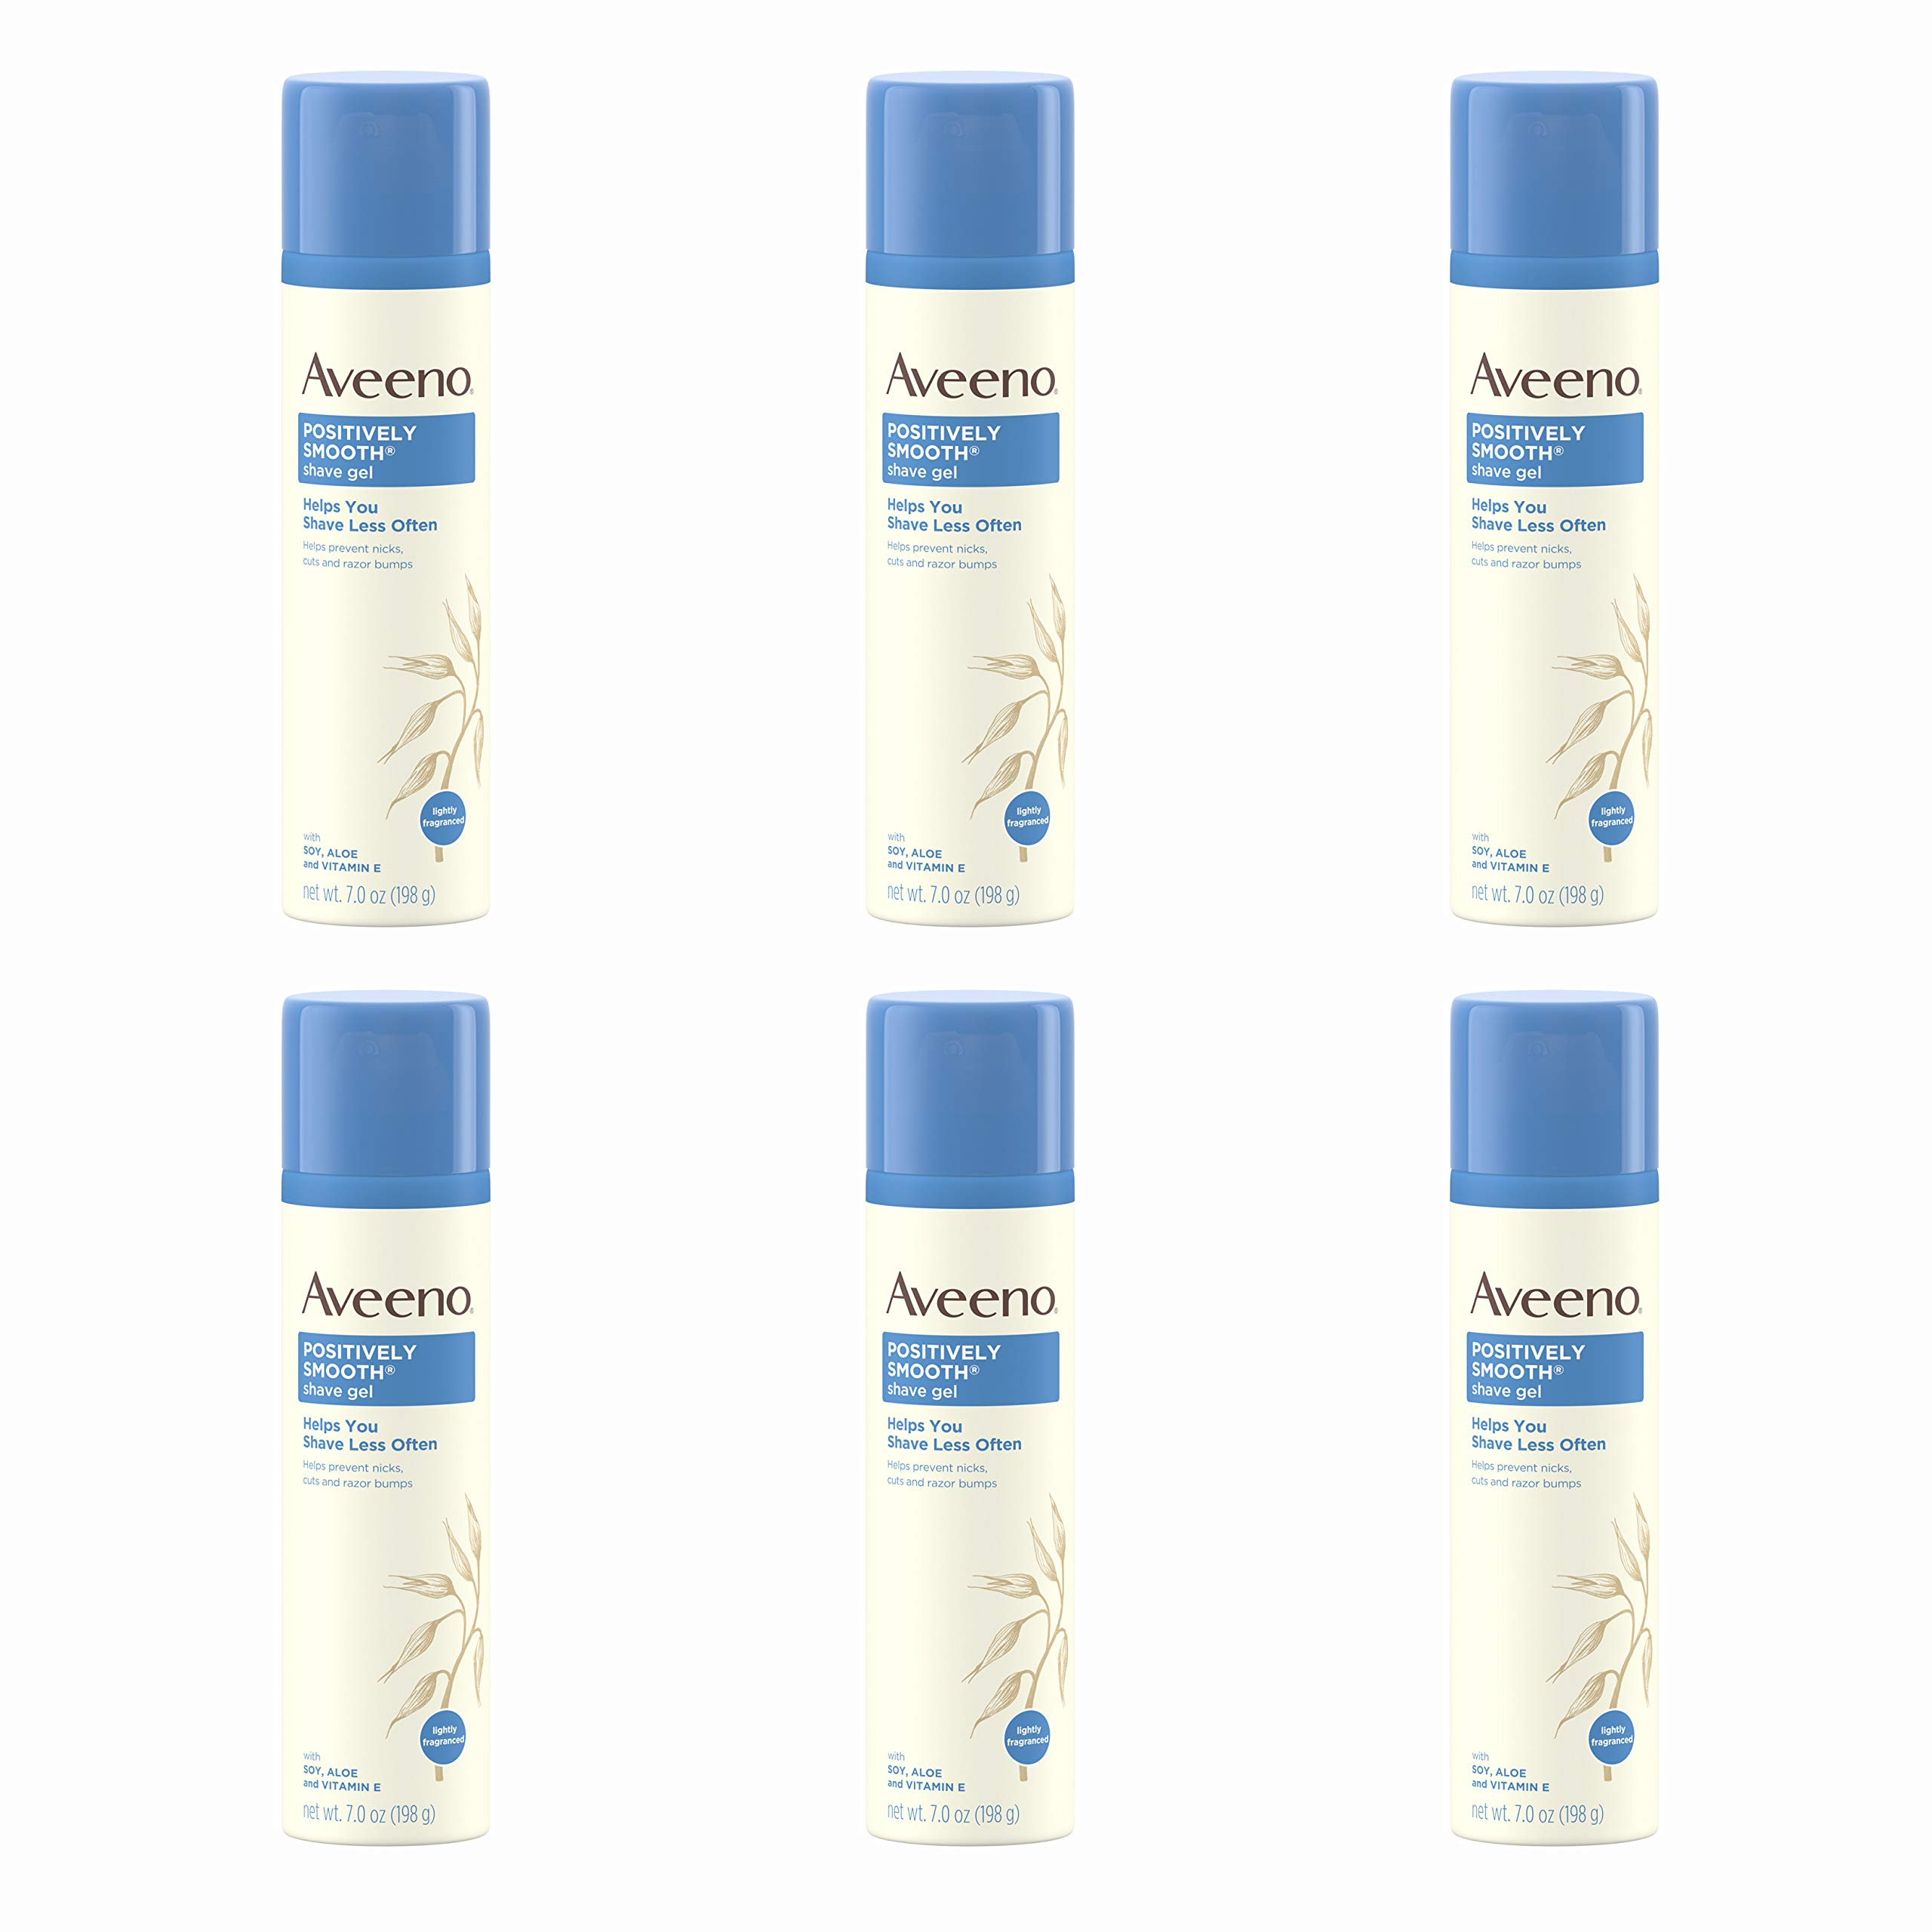 Aveeno Positively Smooth Moisturizing Shave Gel with Soy, Aloe, and Vitamin E to help Prevent Nicks, Cuts and Razor Bumps, Lightly Fragranced, 7 oz (Pack of 6) by Aveeno